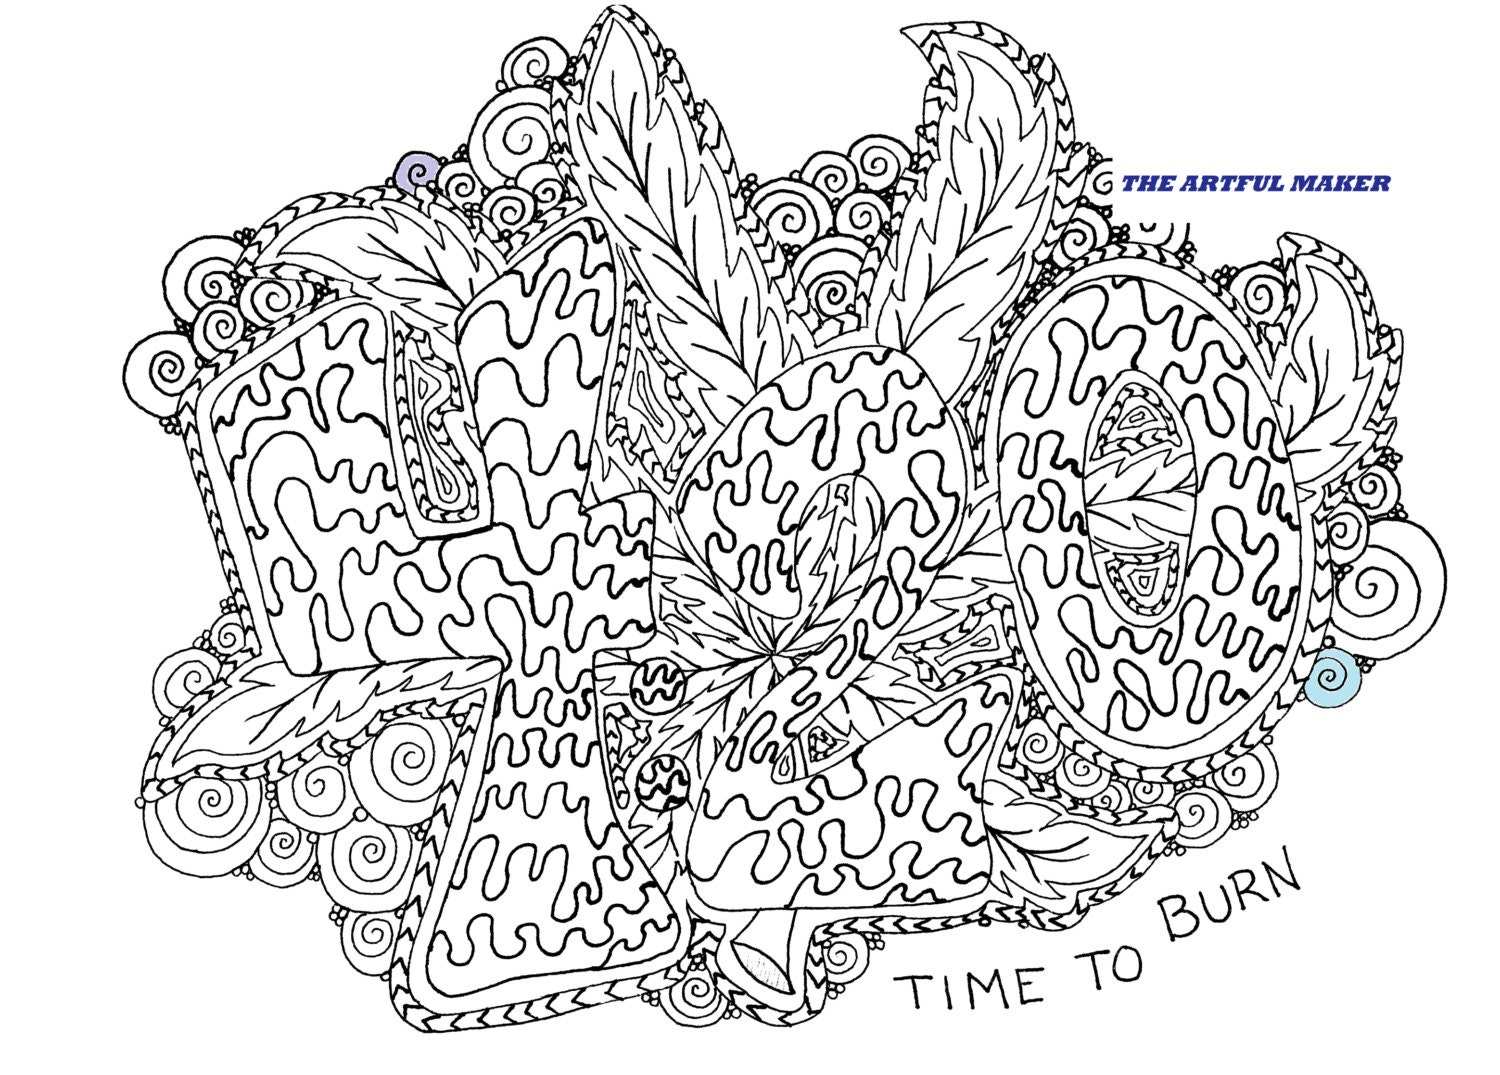 4 20 time to burn coloring page by the artful maker